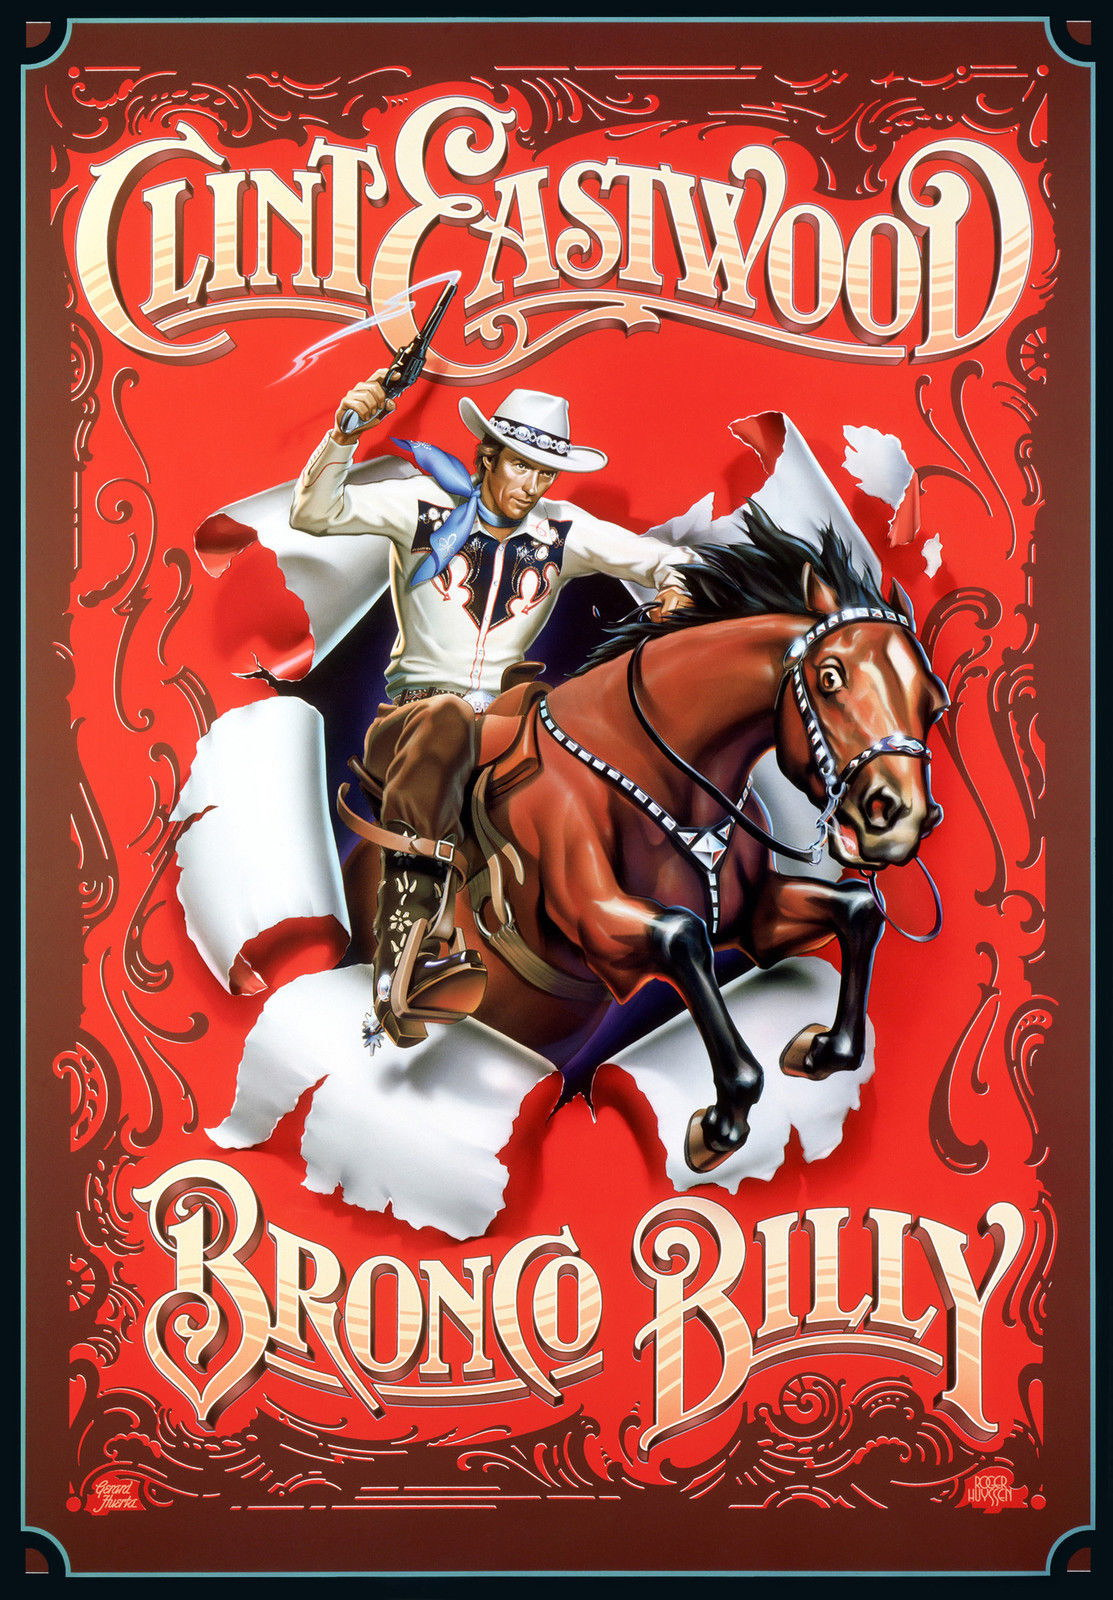 73687-BRONCO-BILLY-Movie-RARE-Clint-Eastwood-Western-Wall-Print-Poster-Affiche